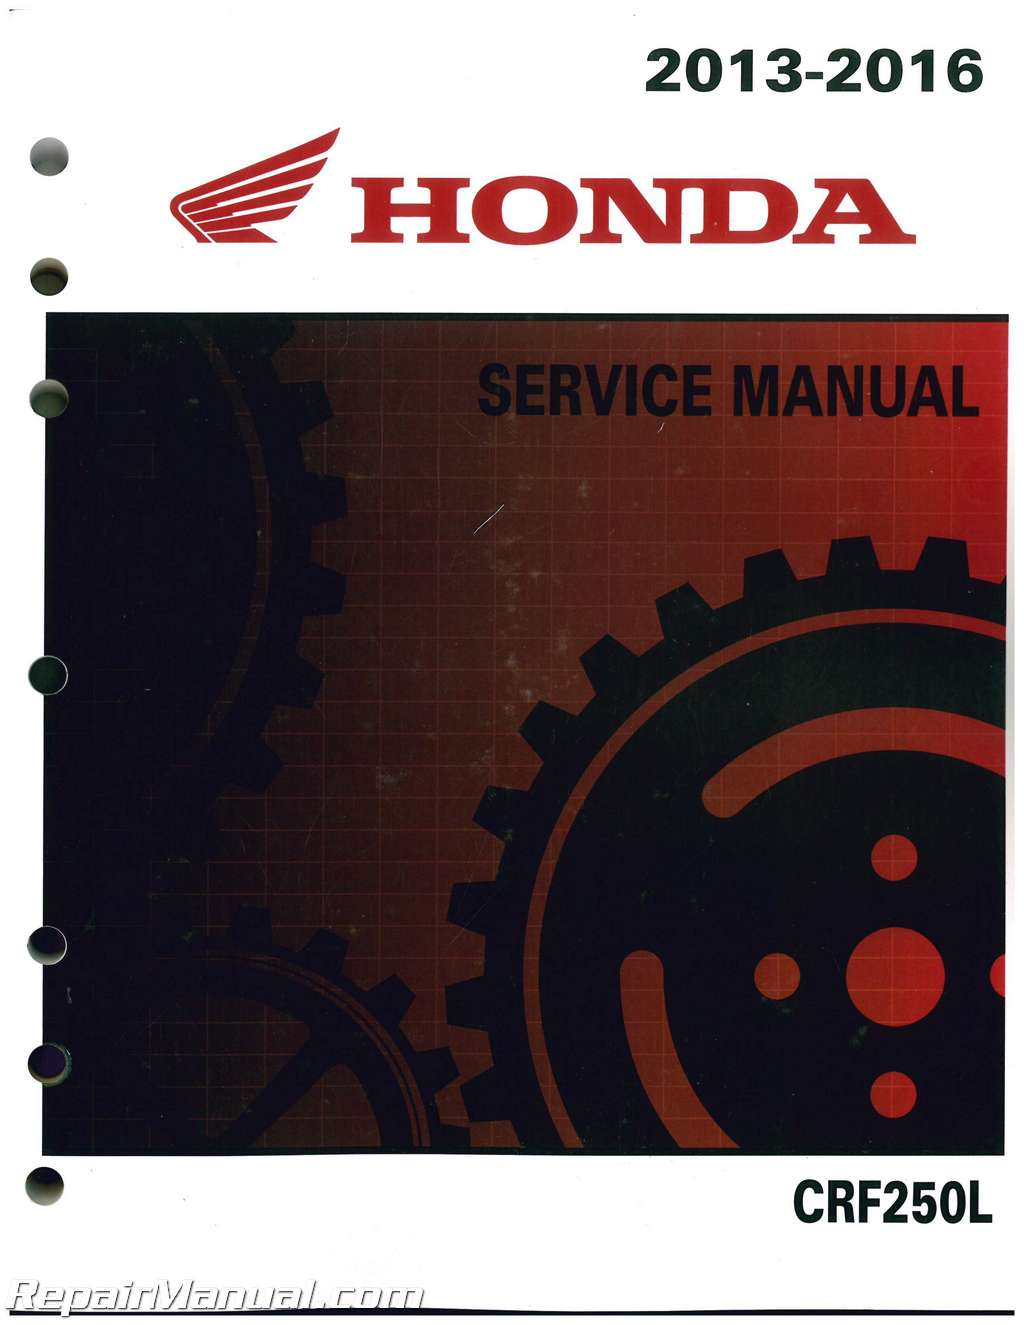 Crf250l Honda Motorcycle Service Manual 2013 2016